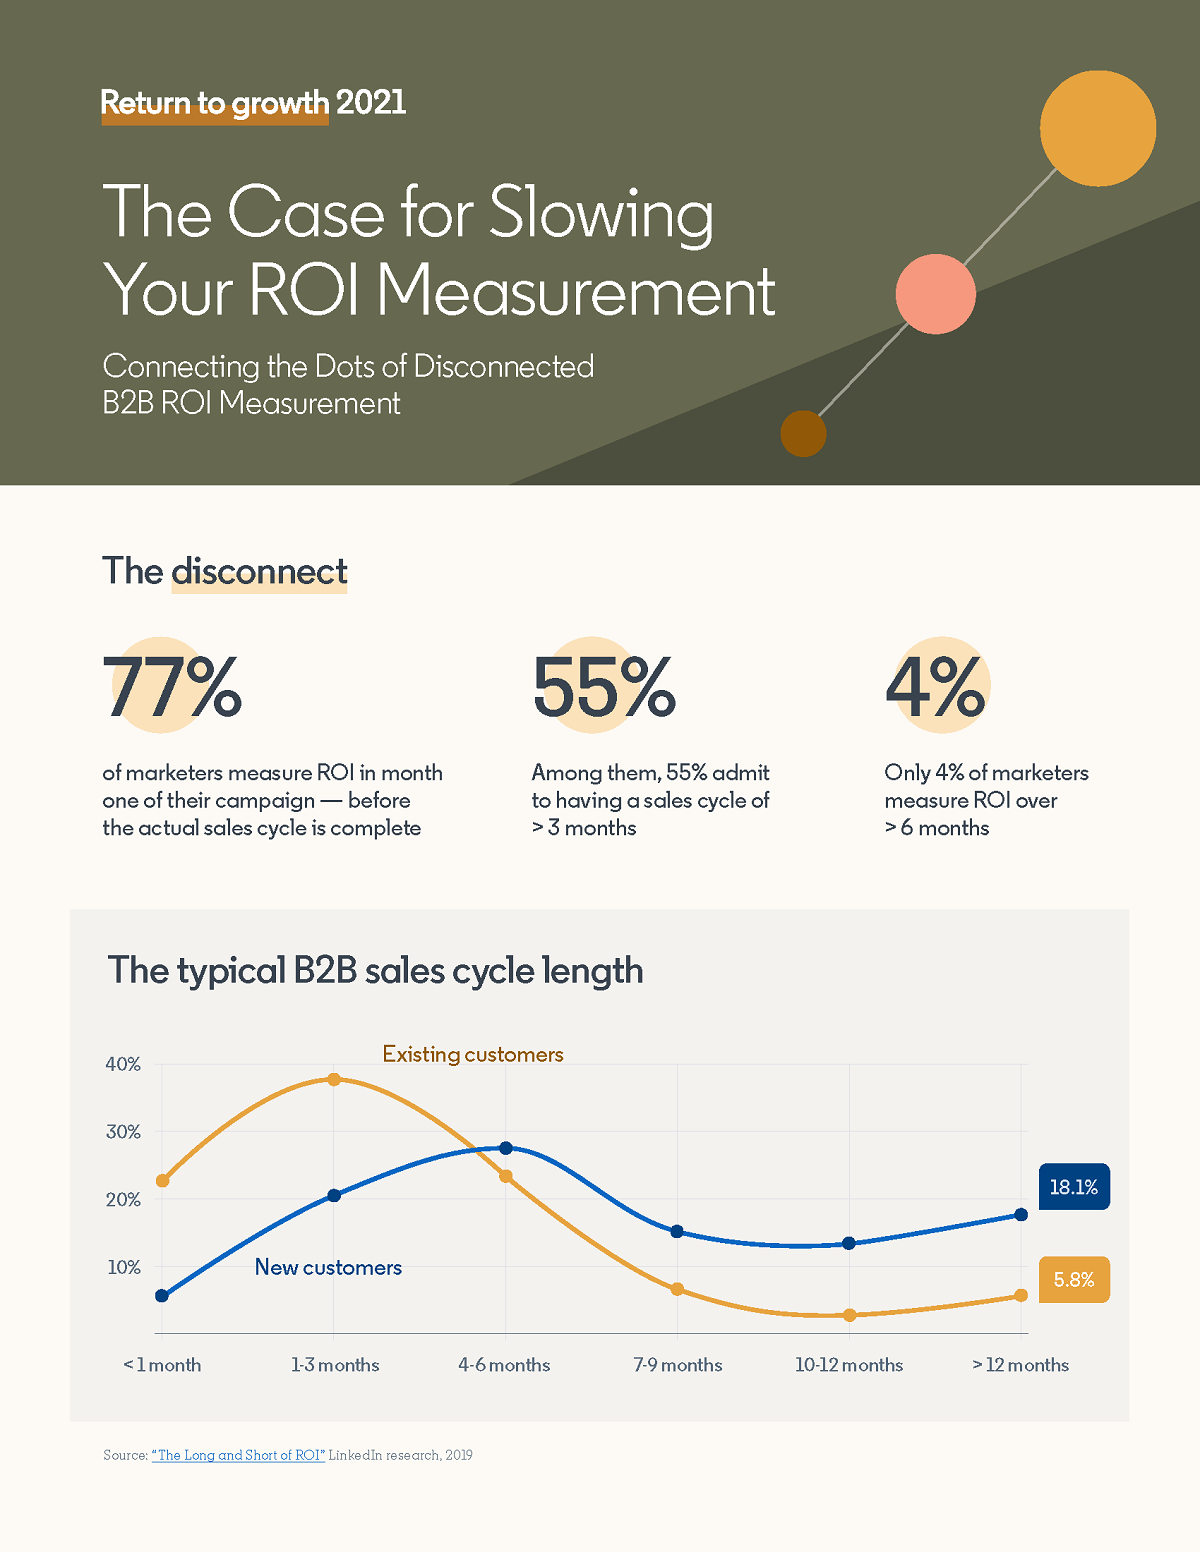 making-the-case-for-slowing-your-roi-measurement-infographic